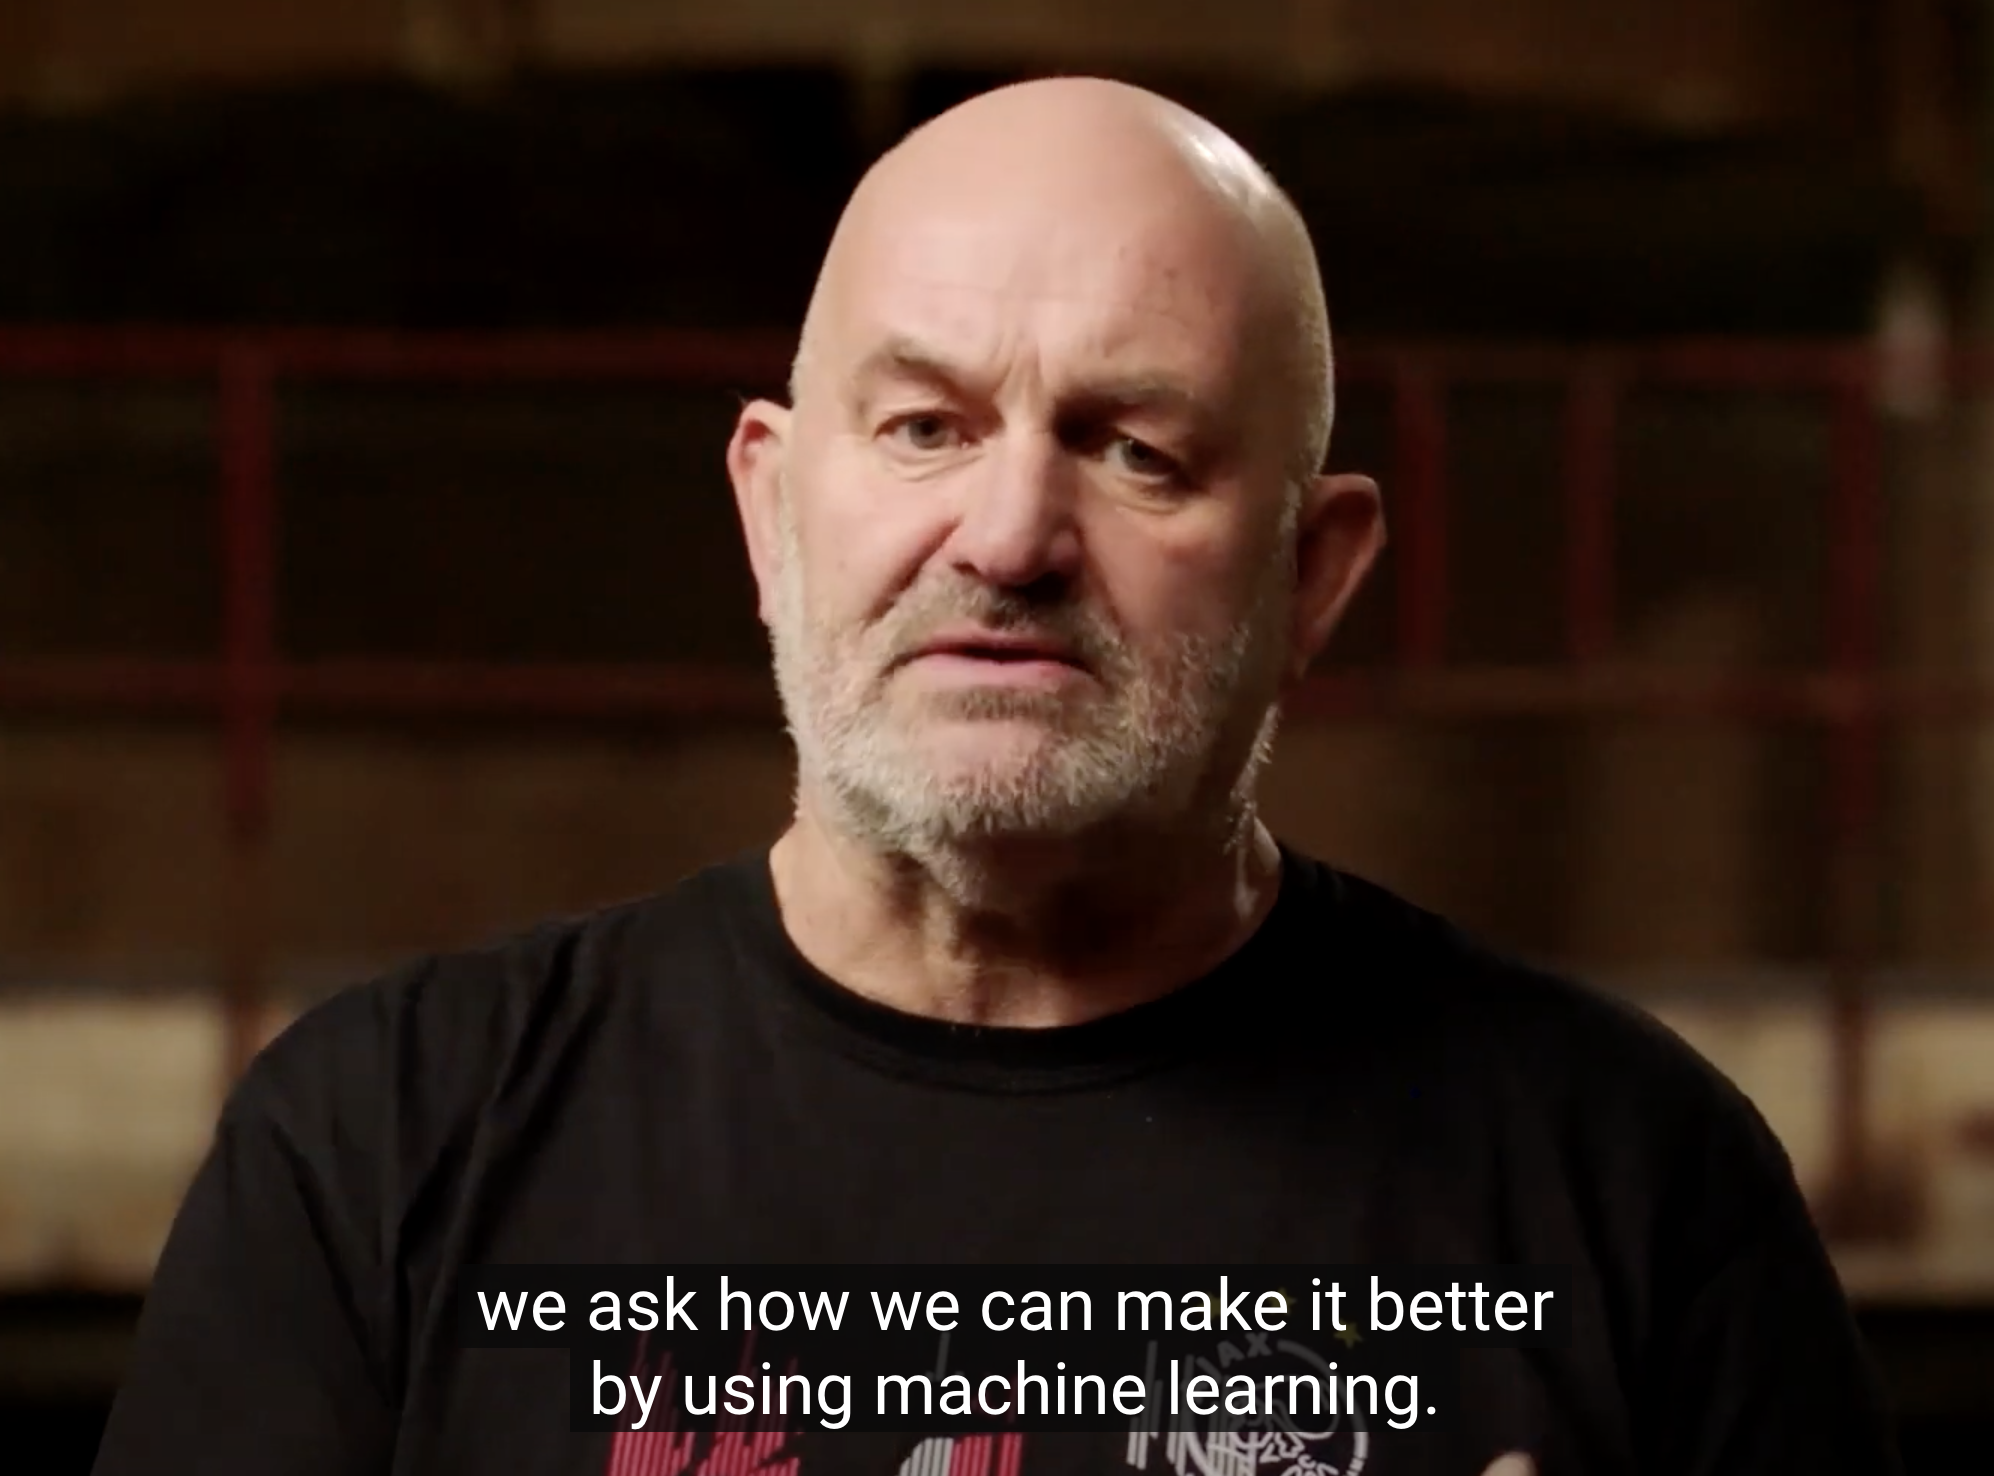 Werner Vogels, use machine learning